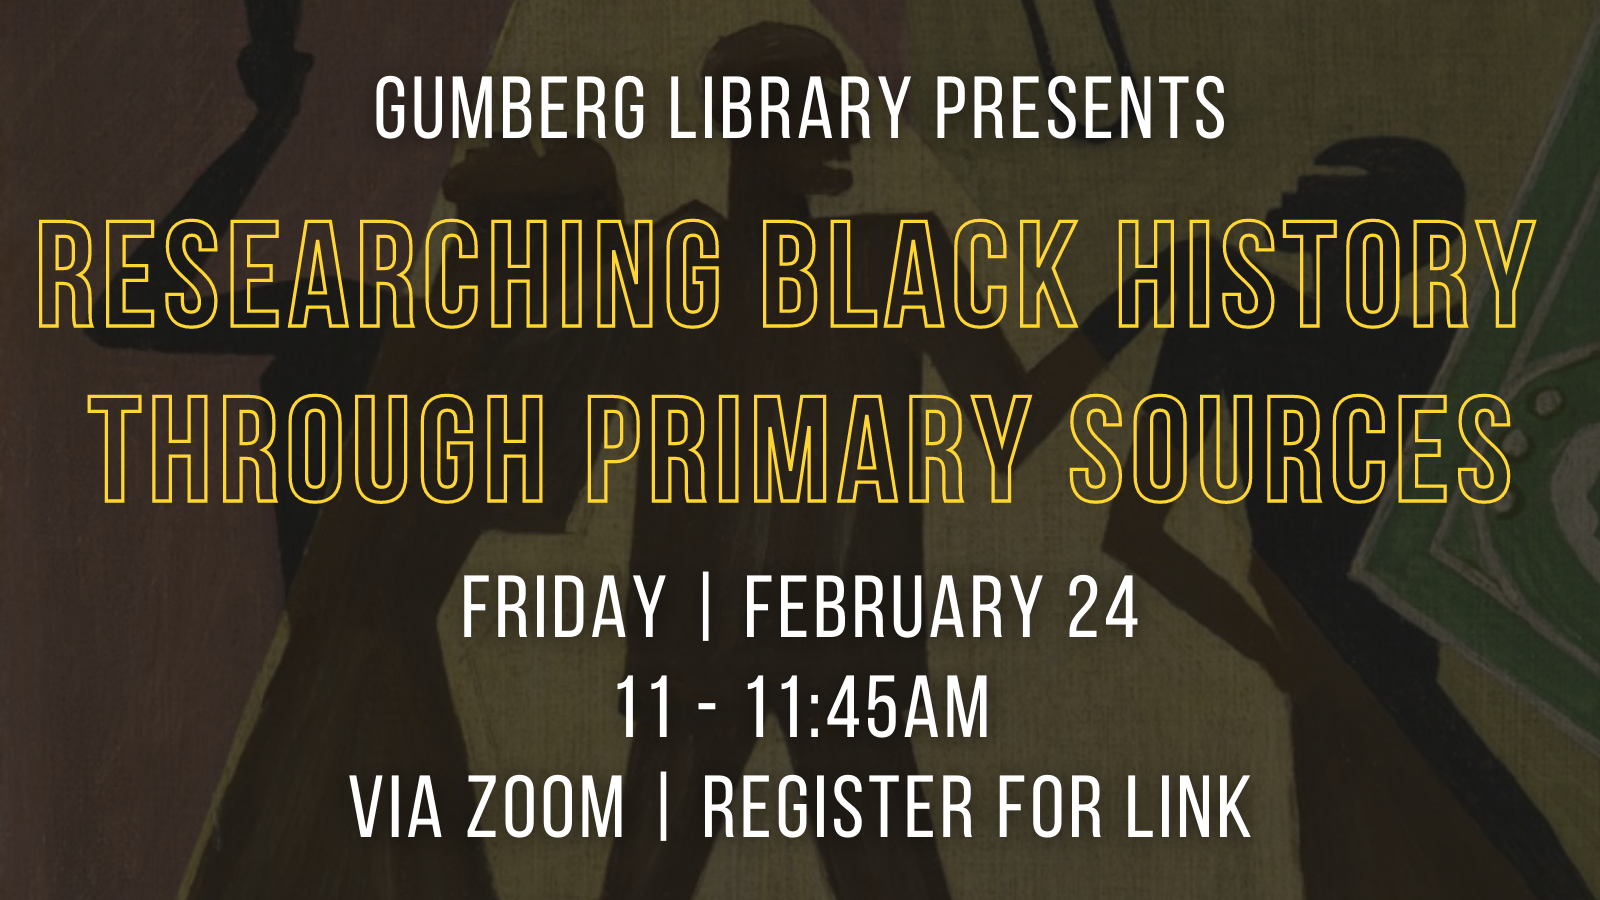 Researching Black History Through Primary Sources